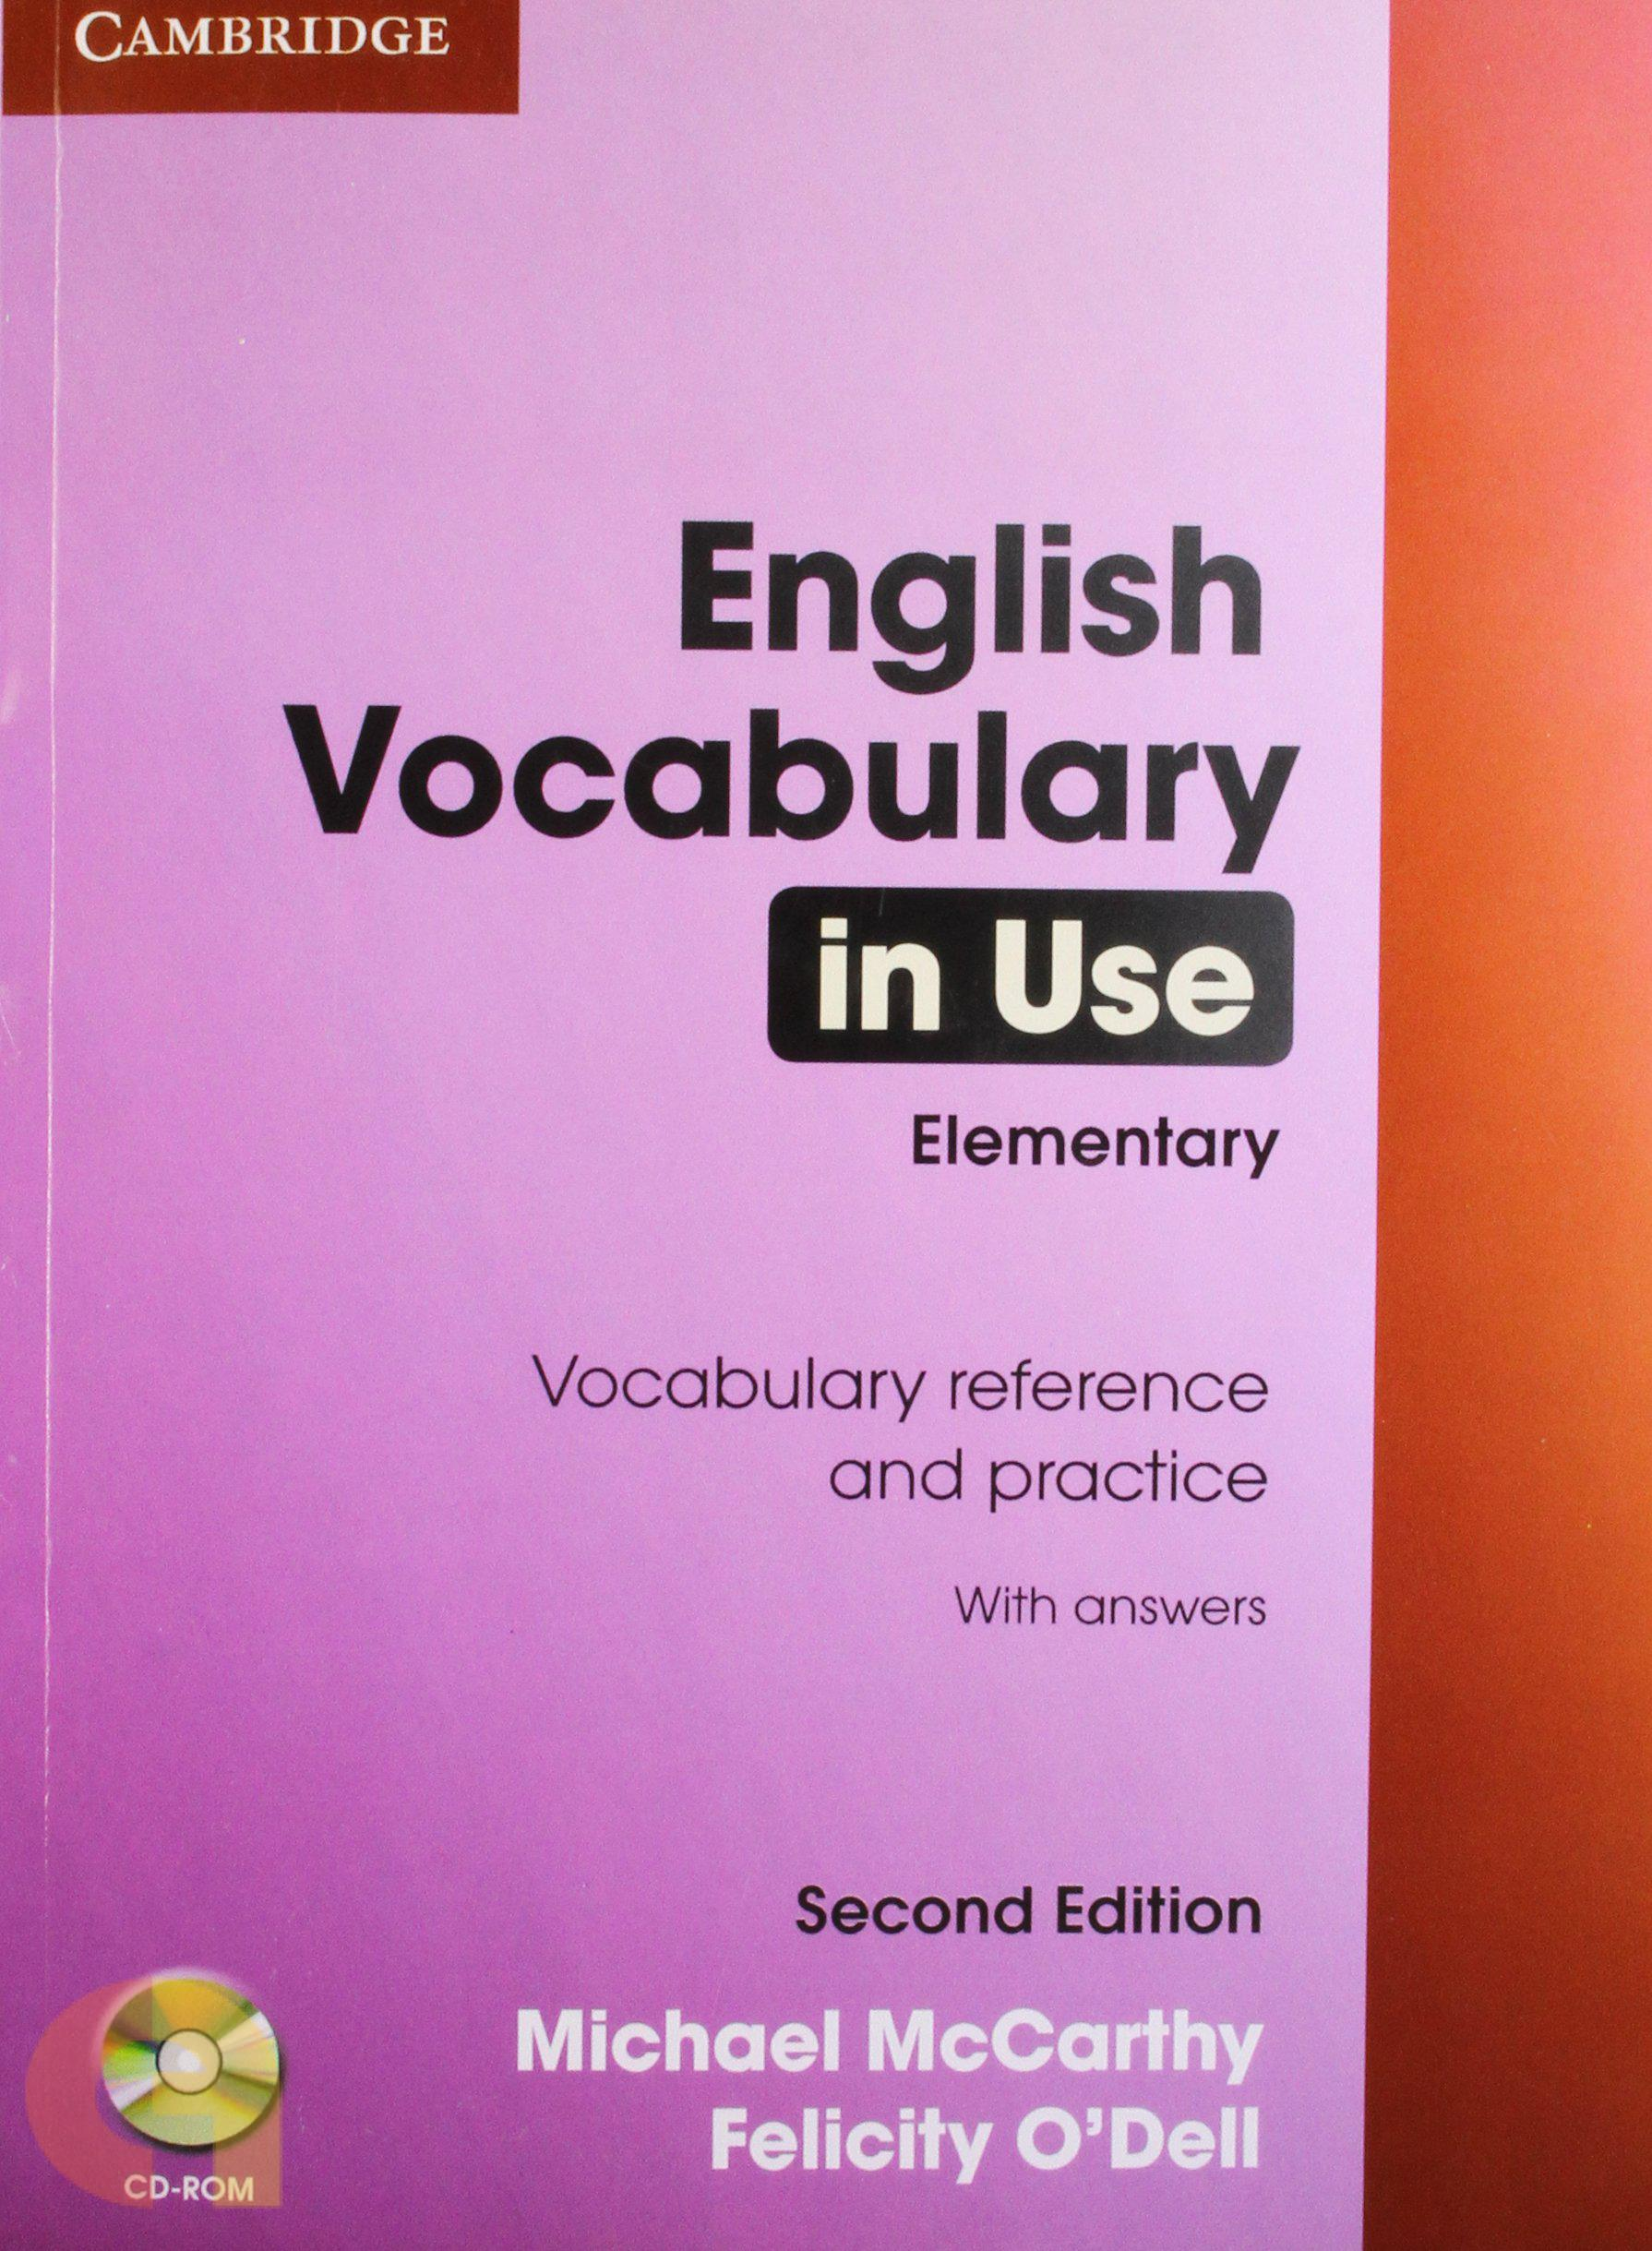 English Vocabulary in Use Elementary Book with Ans and CD ROM 2nd edn